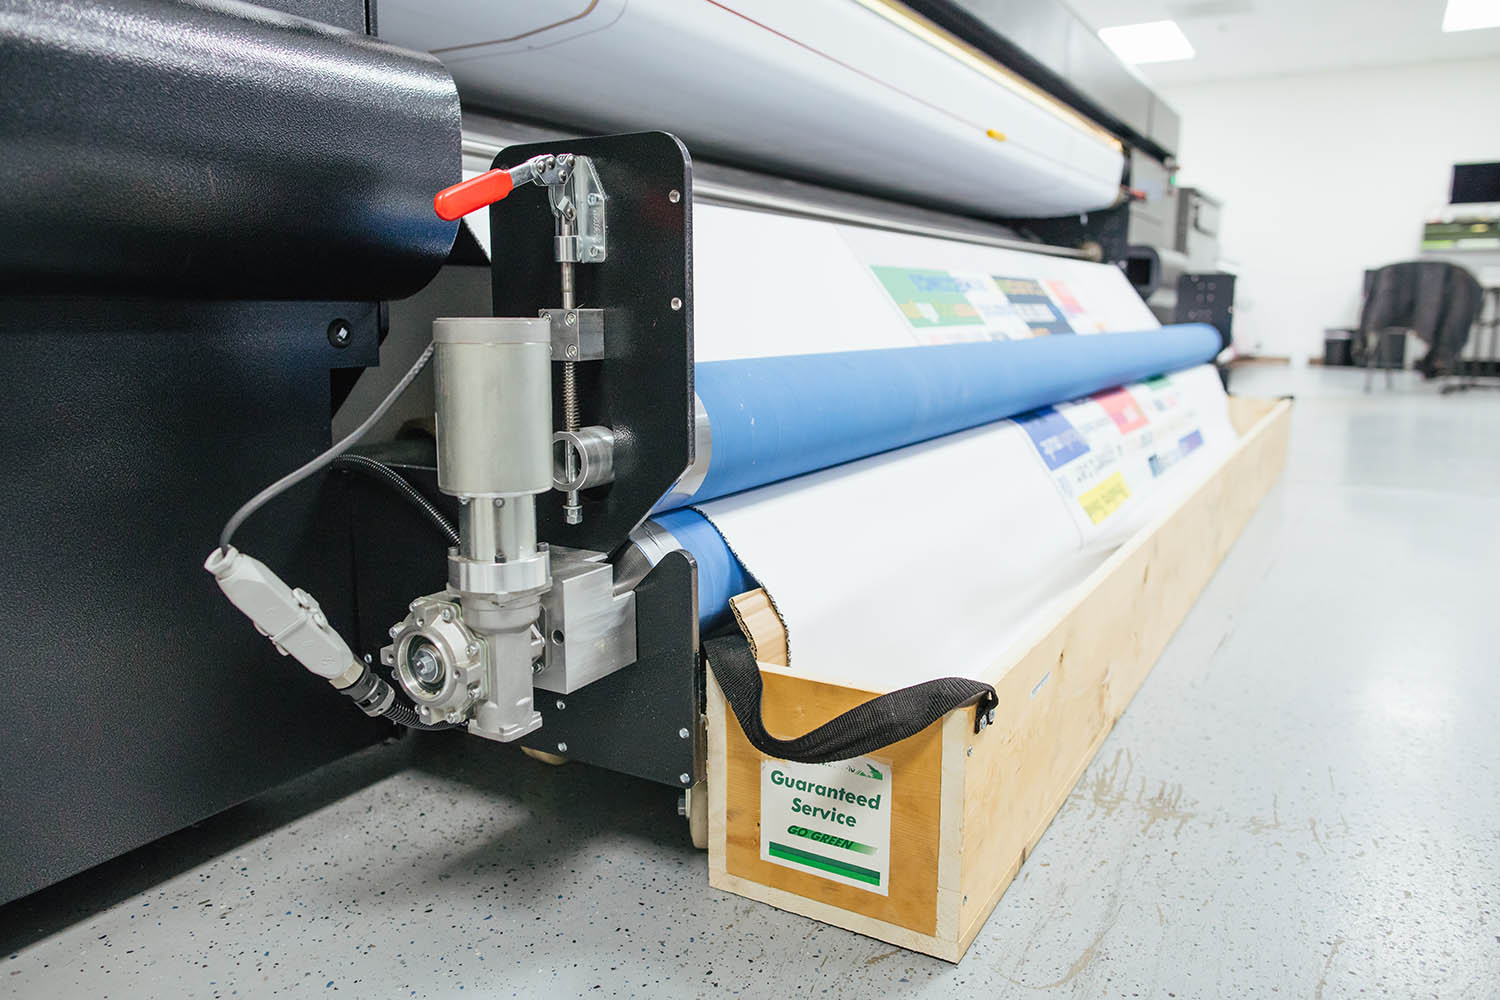 Roll-to-Sheet attachment for the Eos Series.